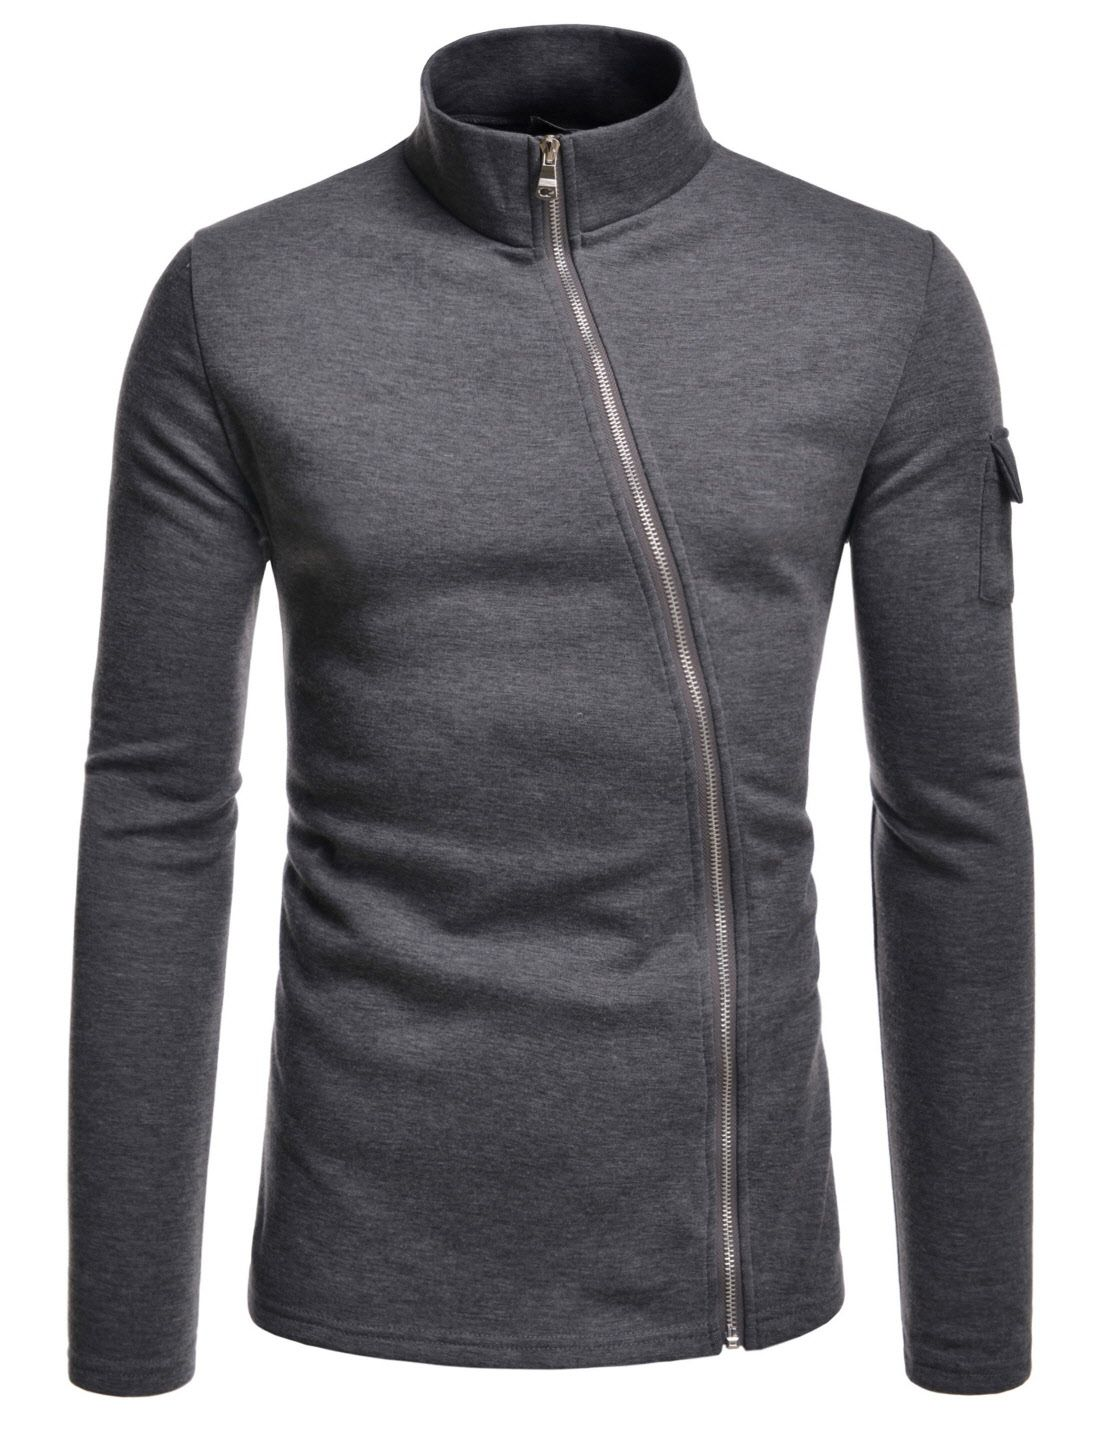 NKLCJ712) TheLees Mens Lightweight Turtleneck Unbalanced Zip-Up ...